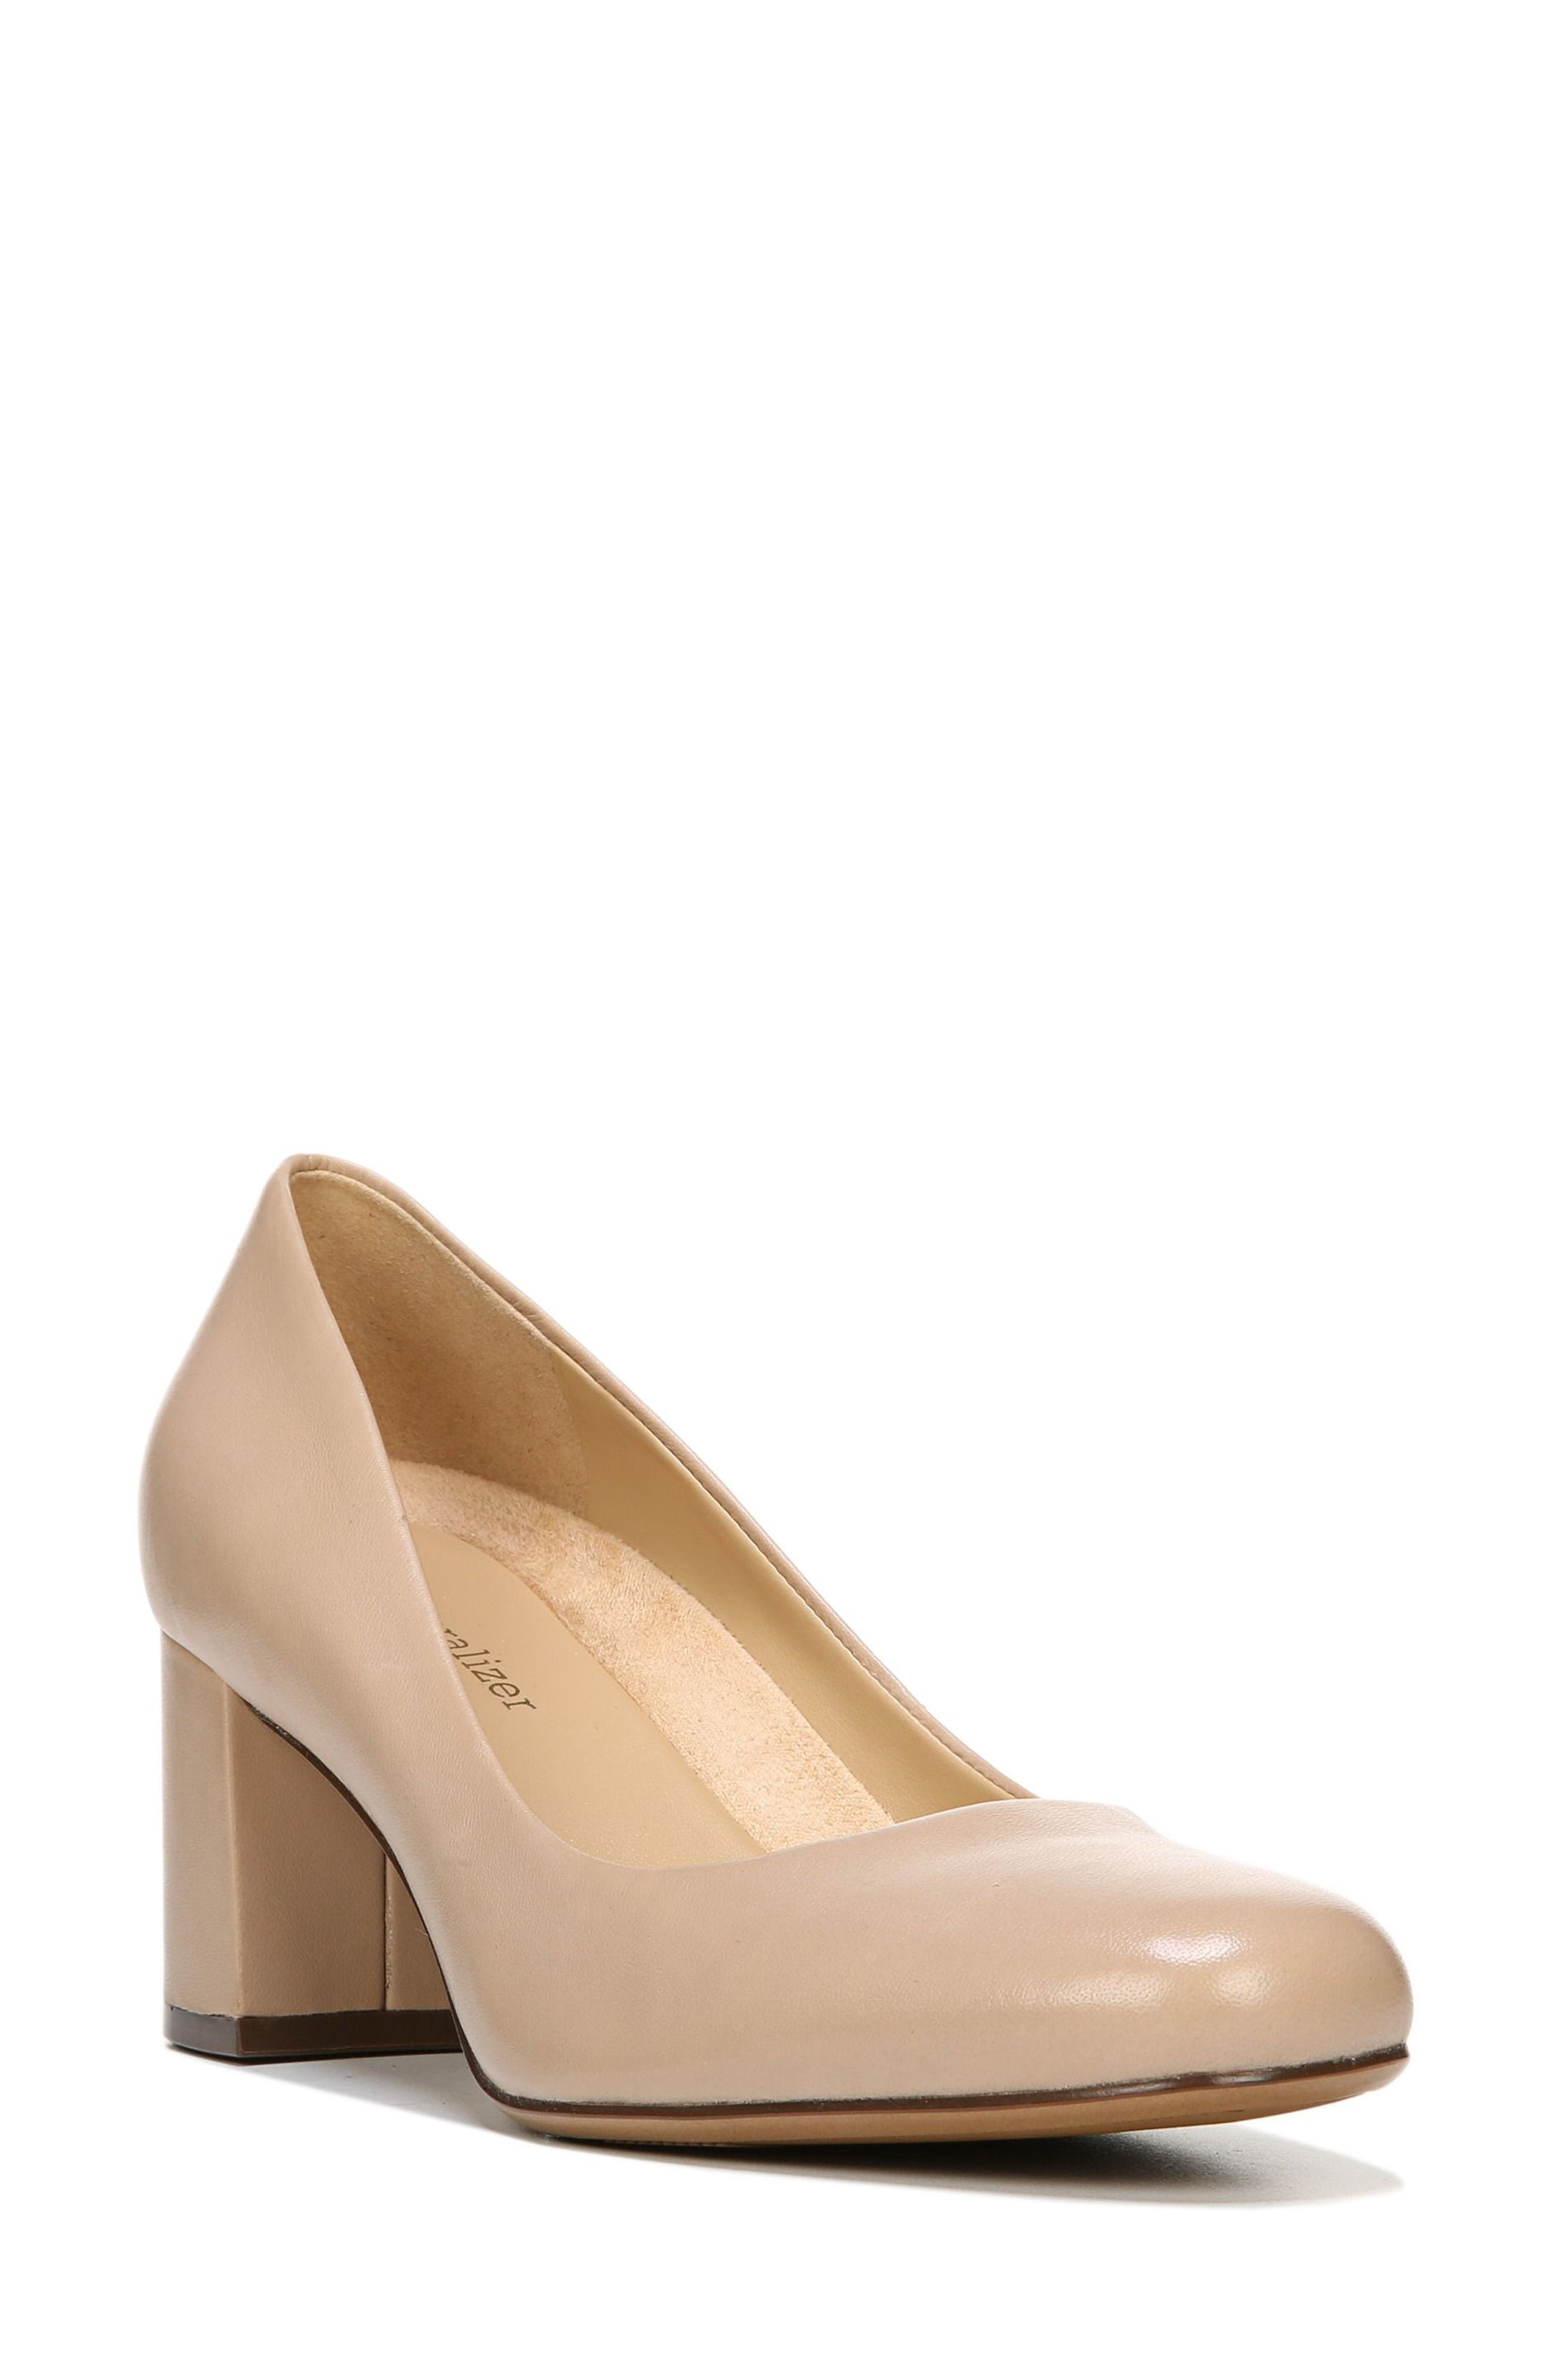 Whitney Pump,                             Main thumbnail 1, color,                             TENDER TAUPE LEATHER